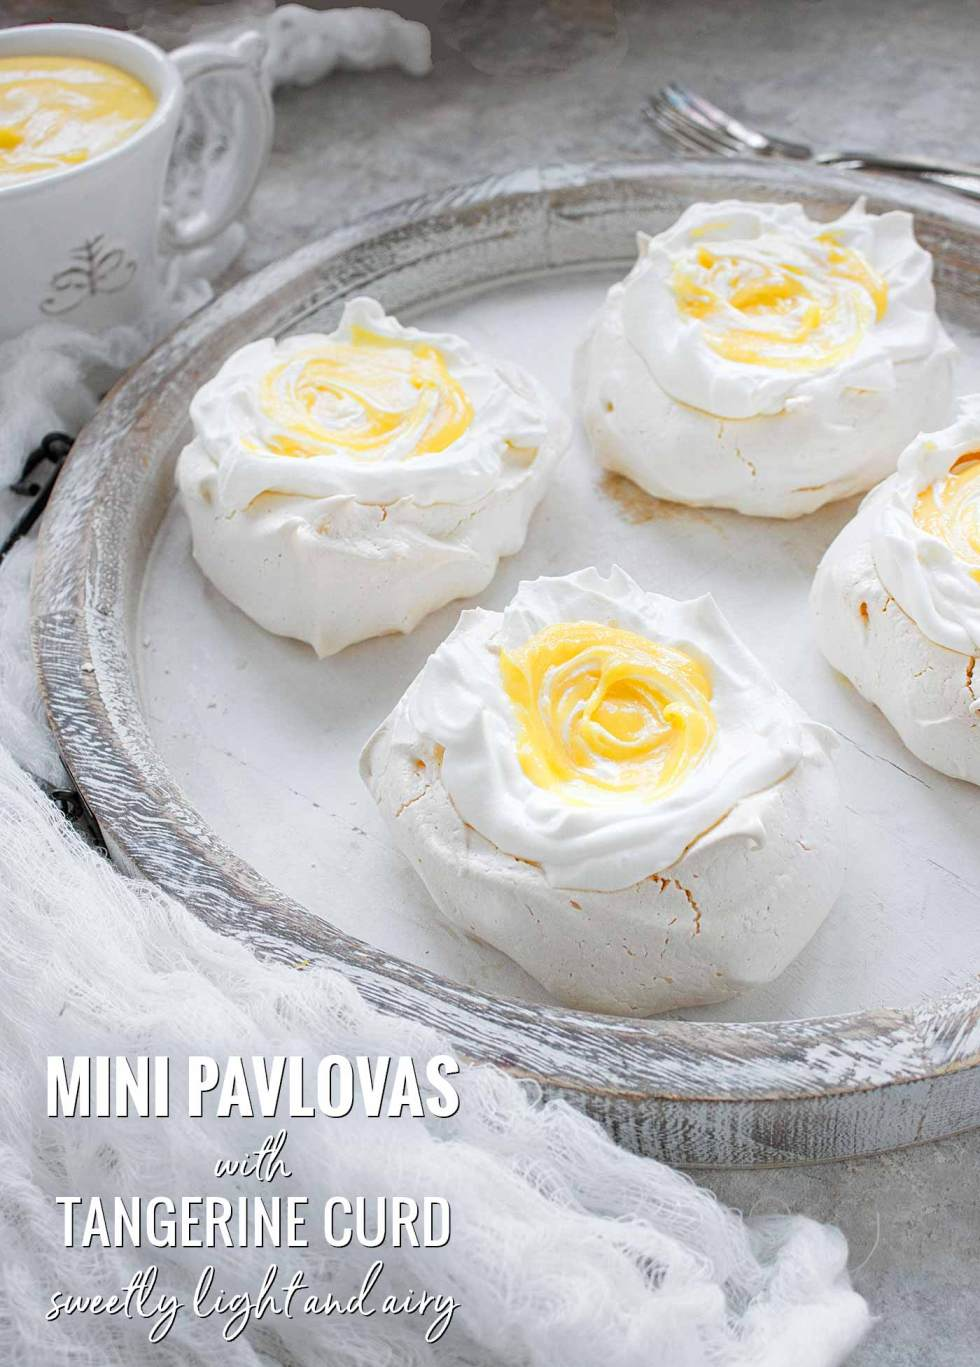 Mini Pavlovas with Tangerine Curd - Recipe at SoupAddict.com